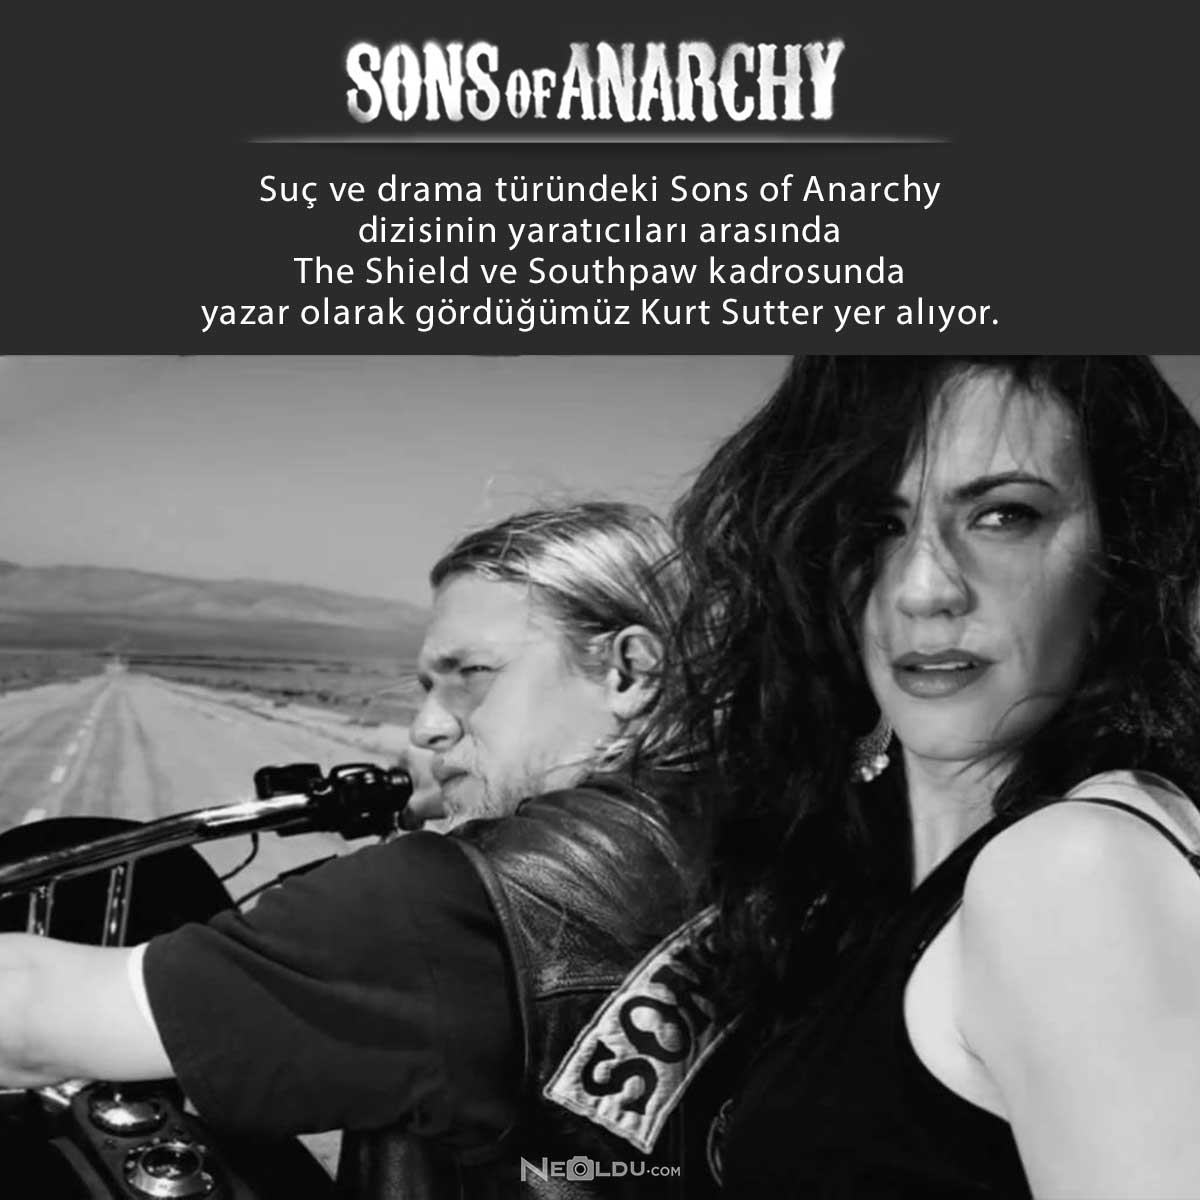 sons-of-anarchydizisi-.jpg